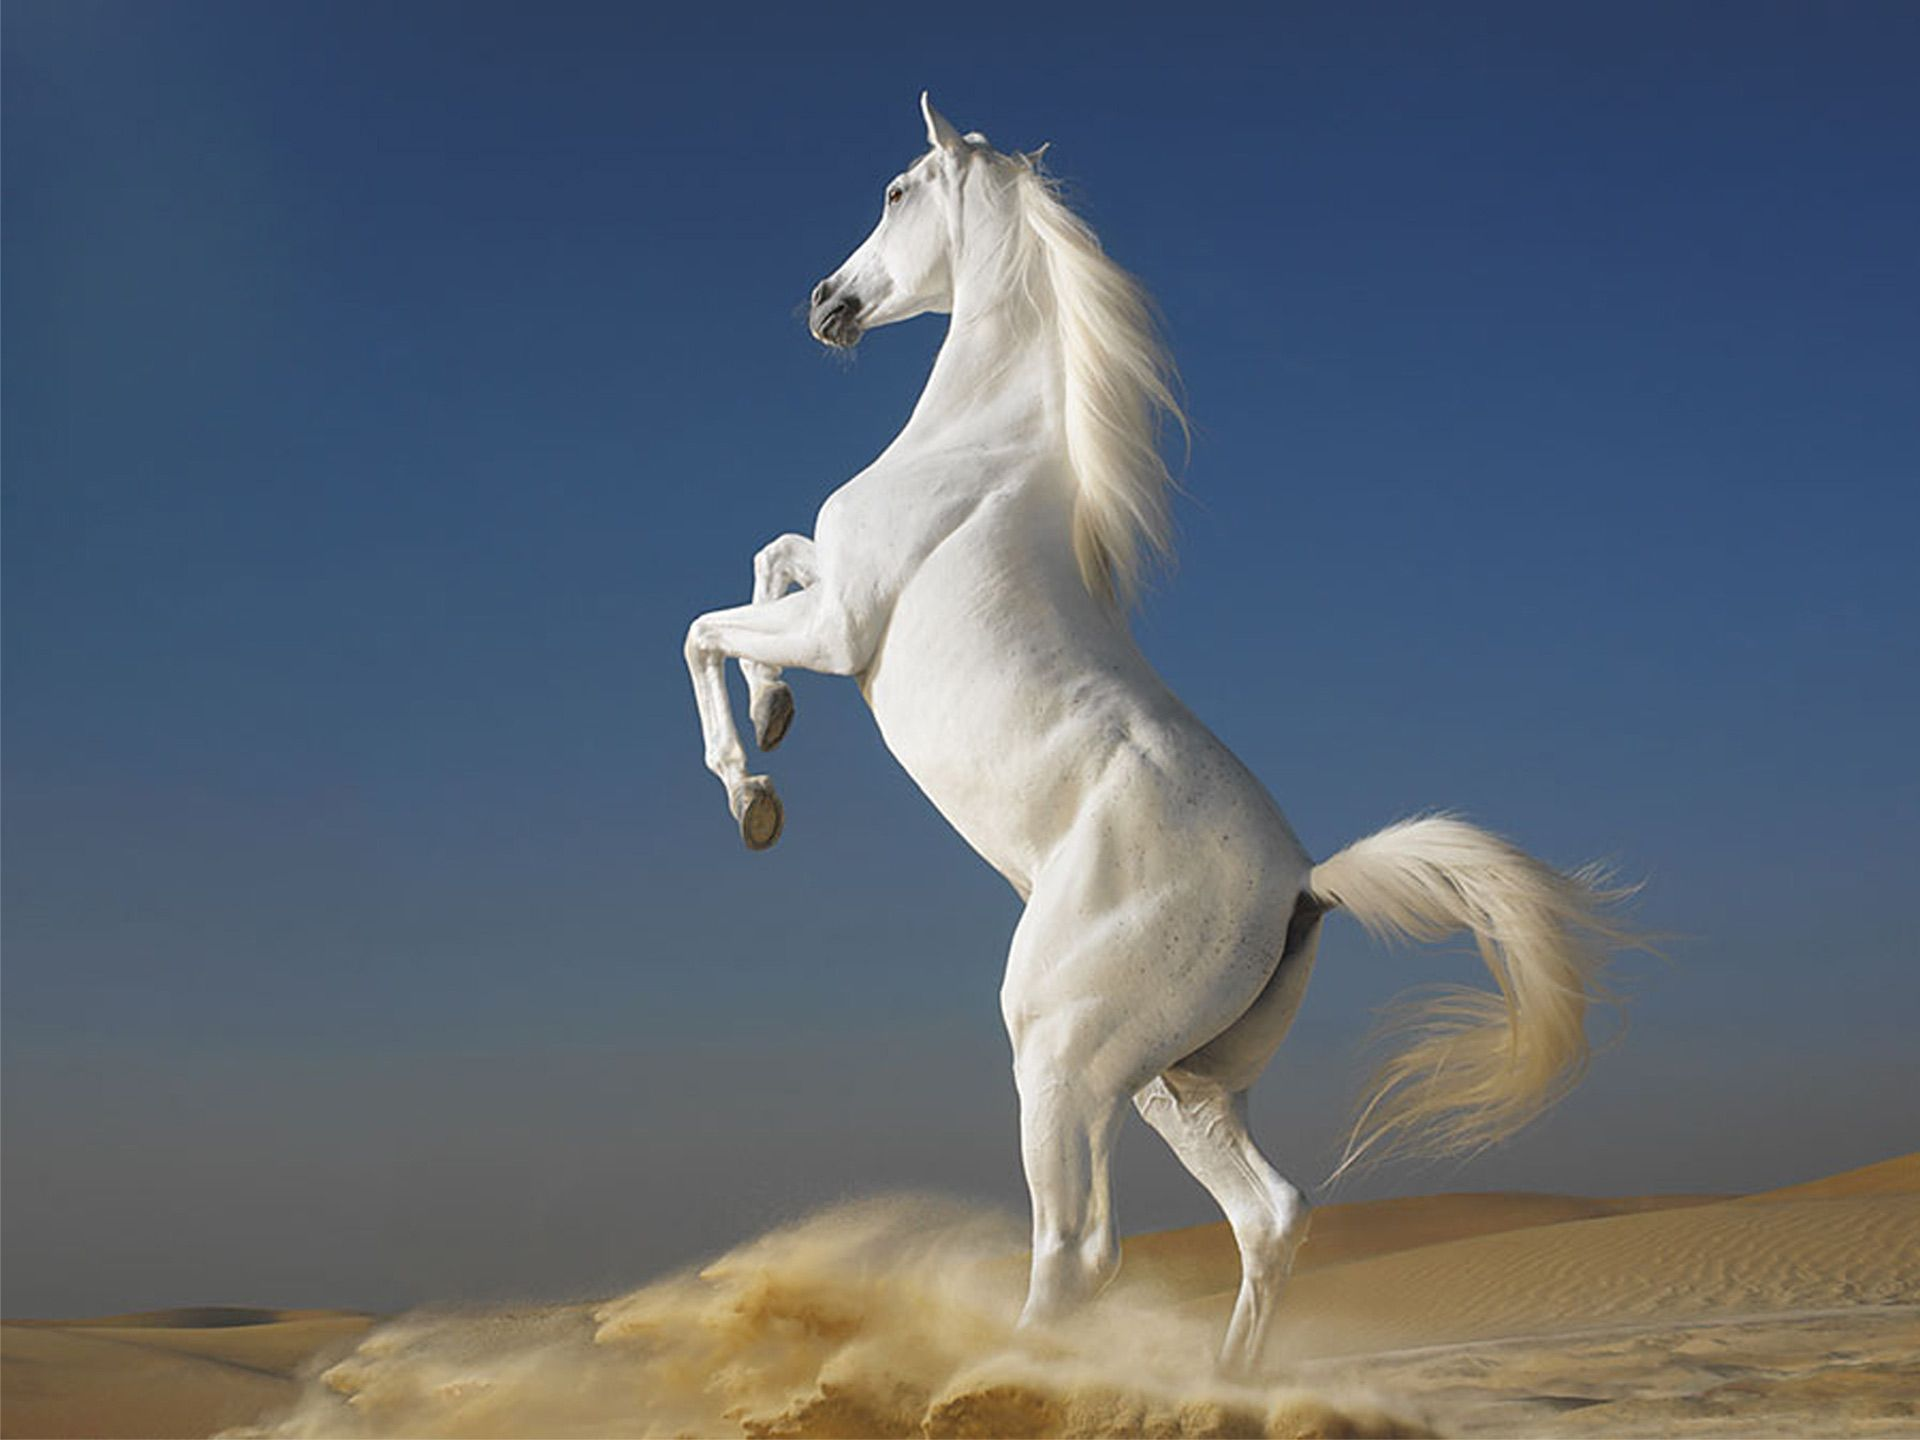 12 best horses images on pinterest | horse wallpaper, horses and